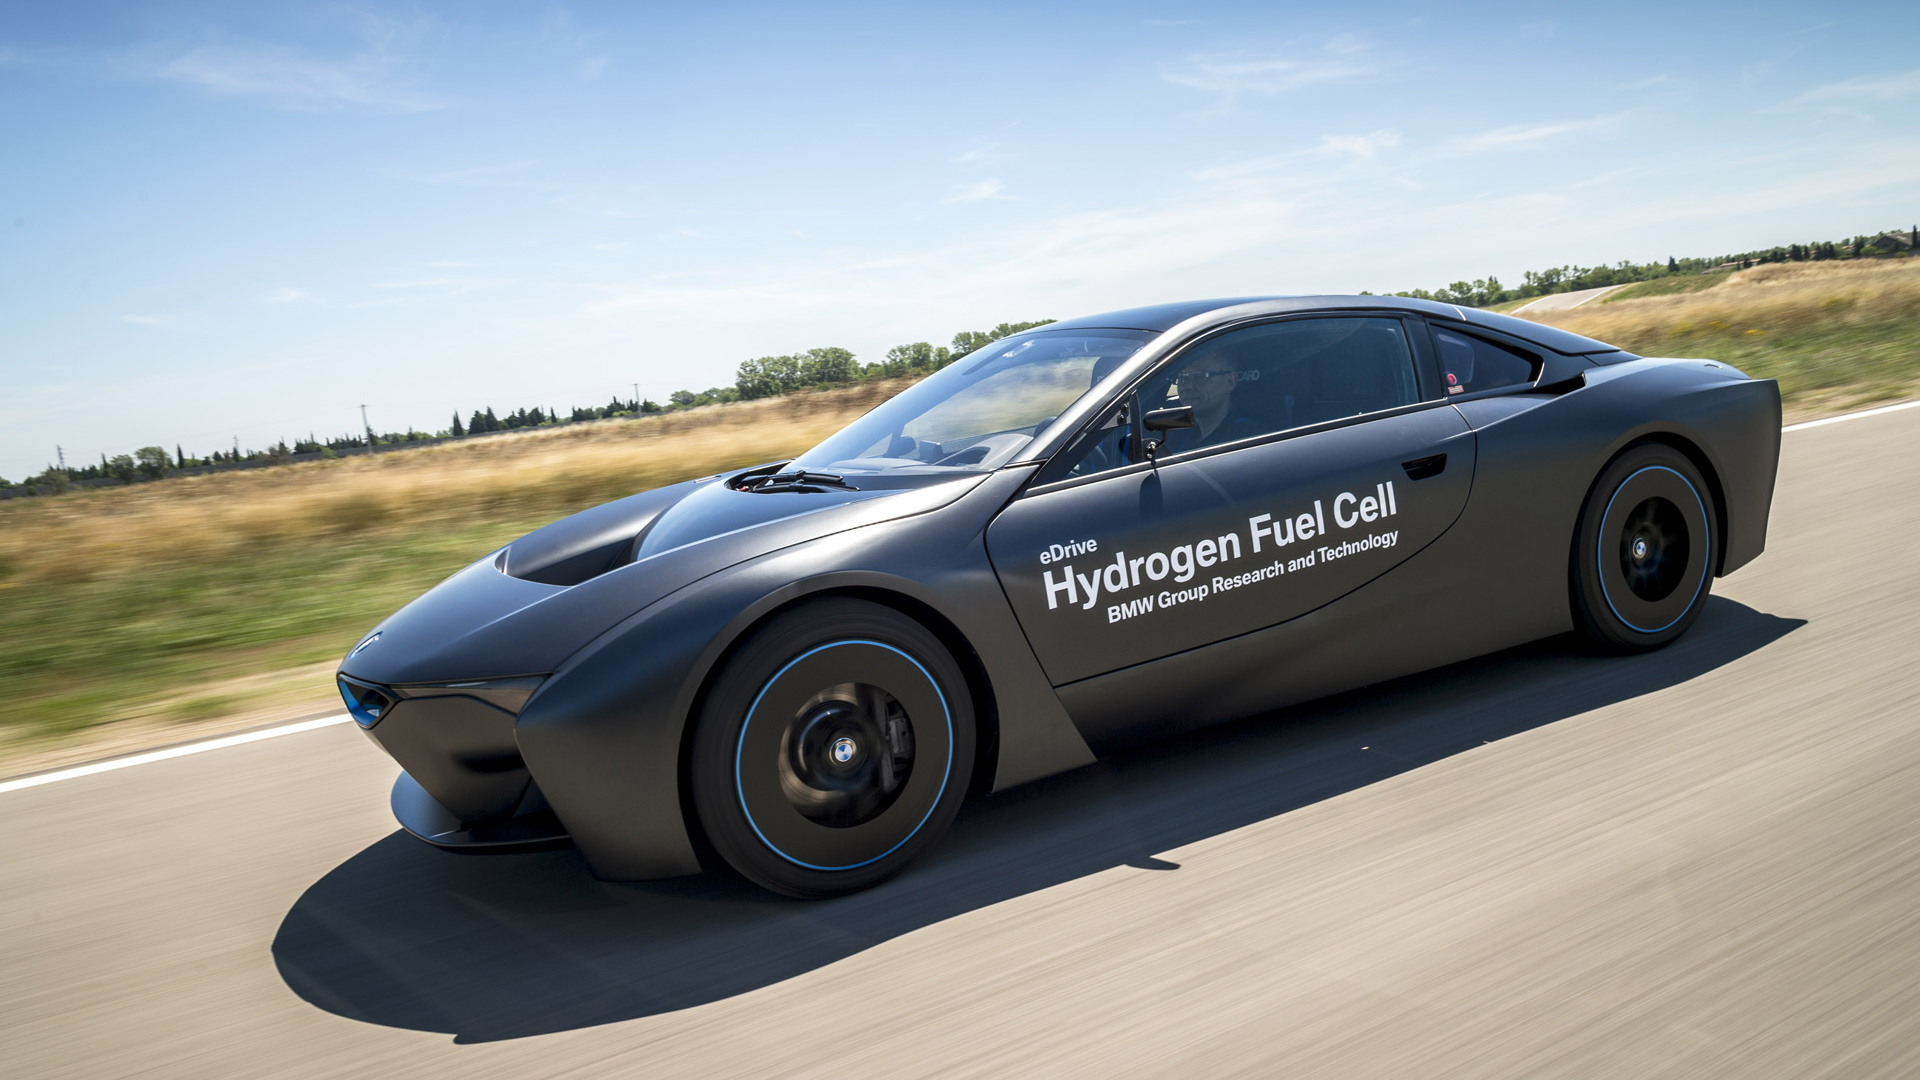 BMW i8 hydrogen fuel cell concept